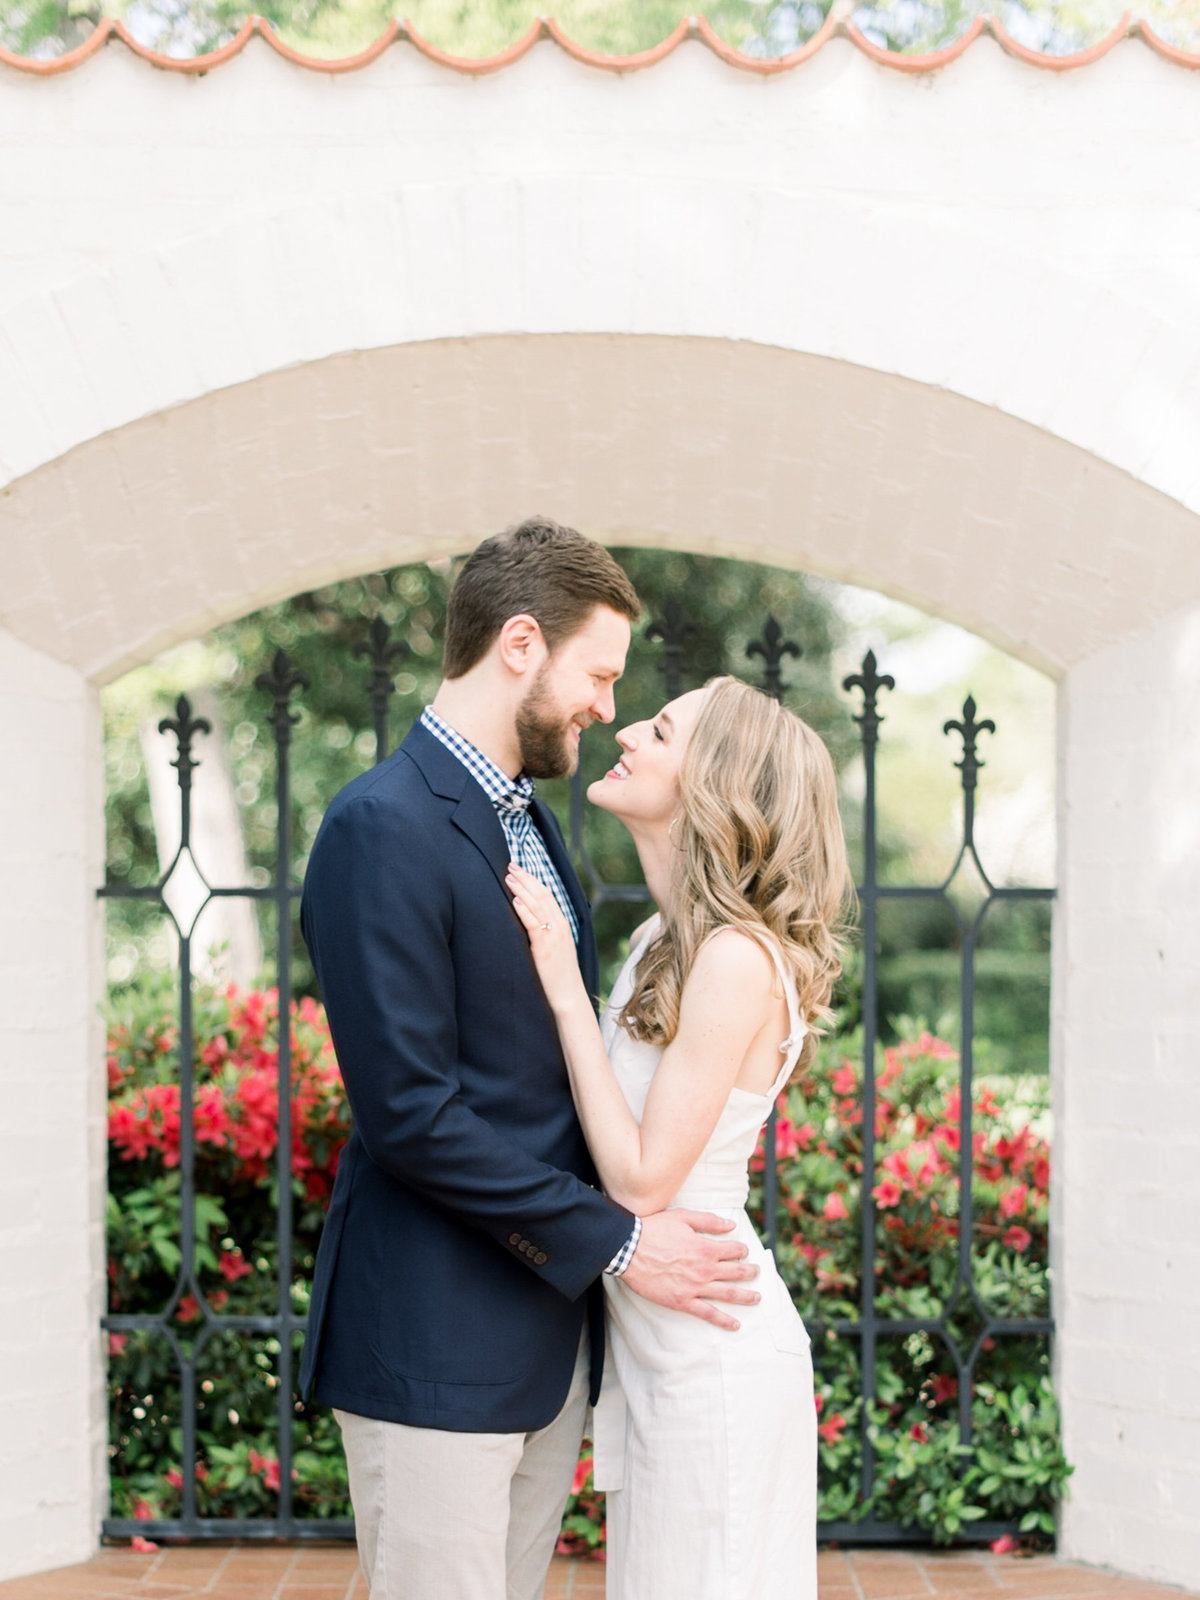 Courtney Hanson Photography - Dallas Spring Engagement Photos at Dallas Arboretum-2697